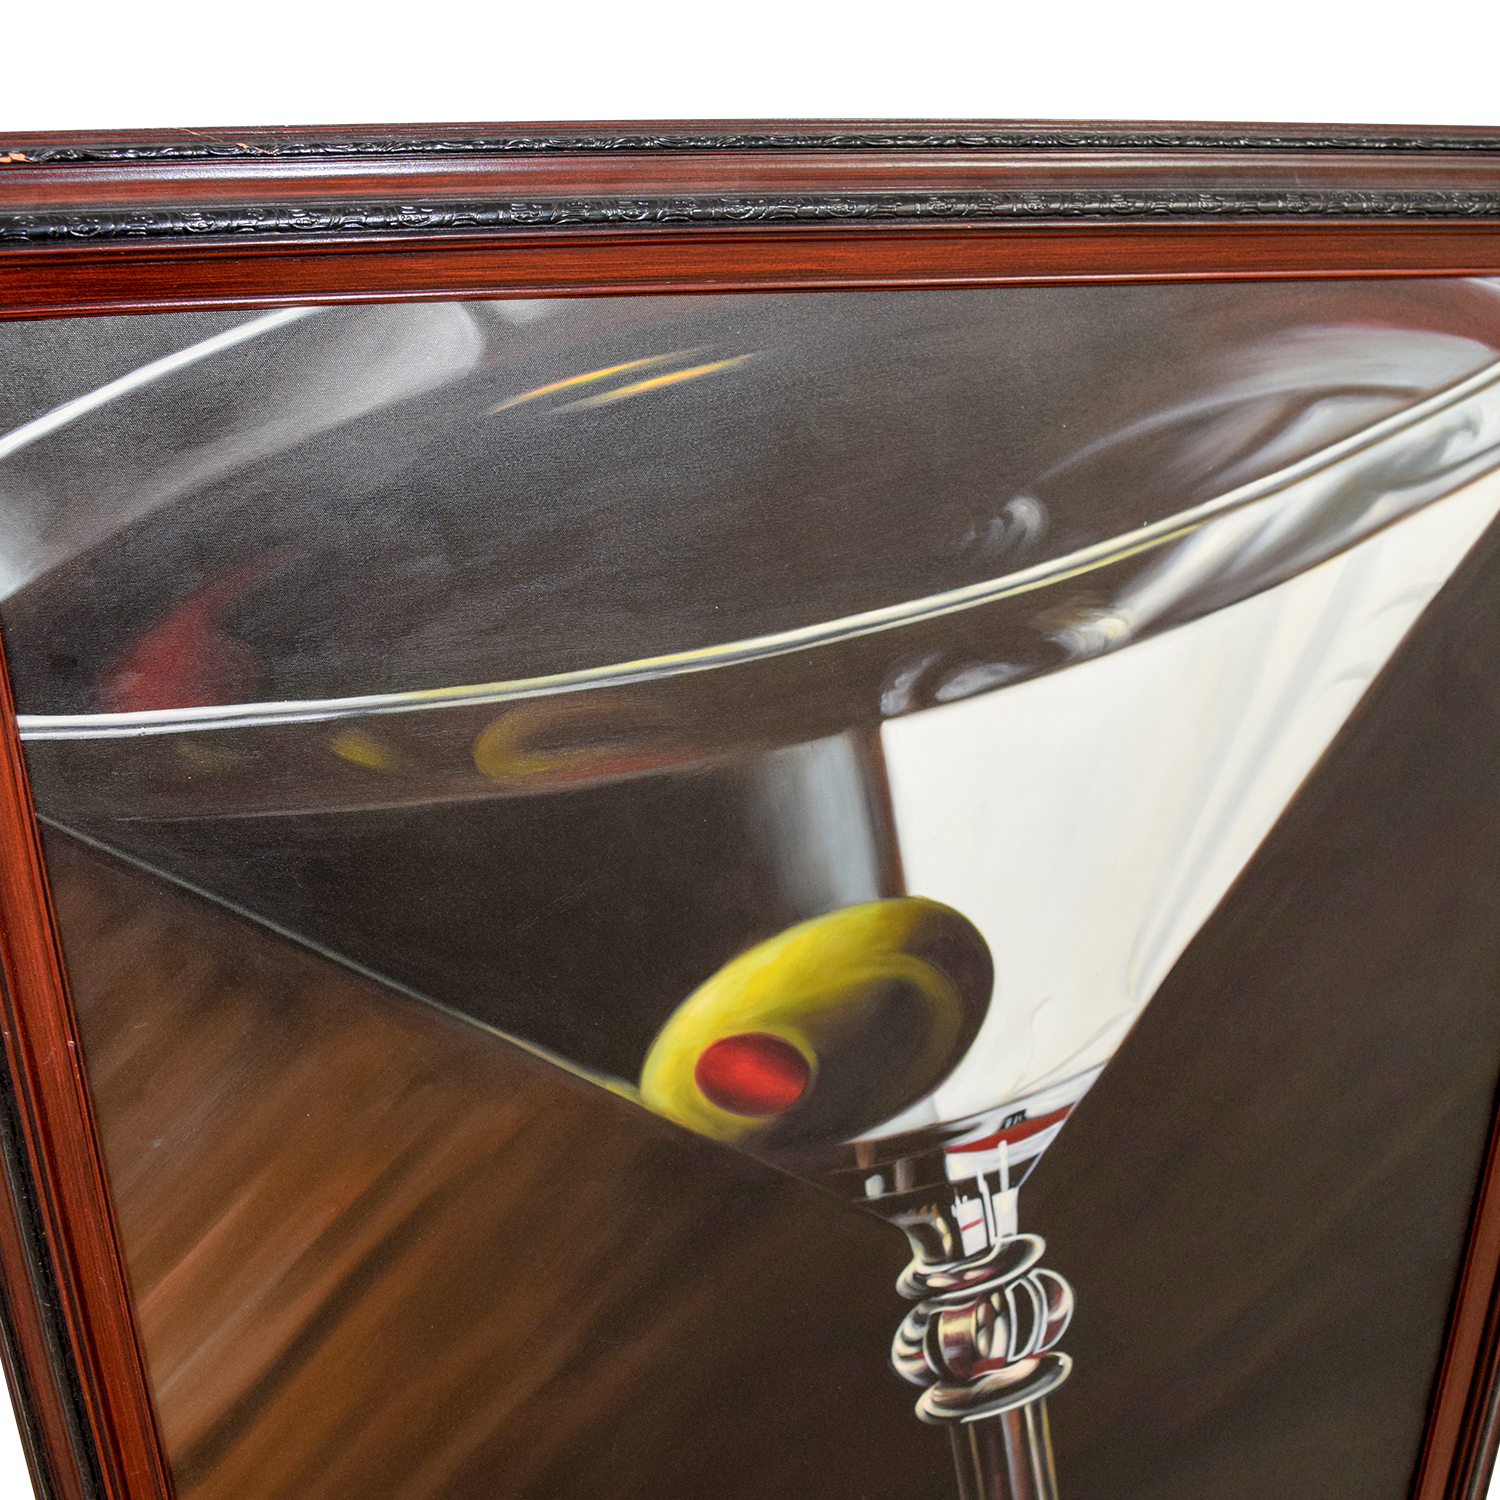 Lithograph of Martini Glass with Olive Decor